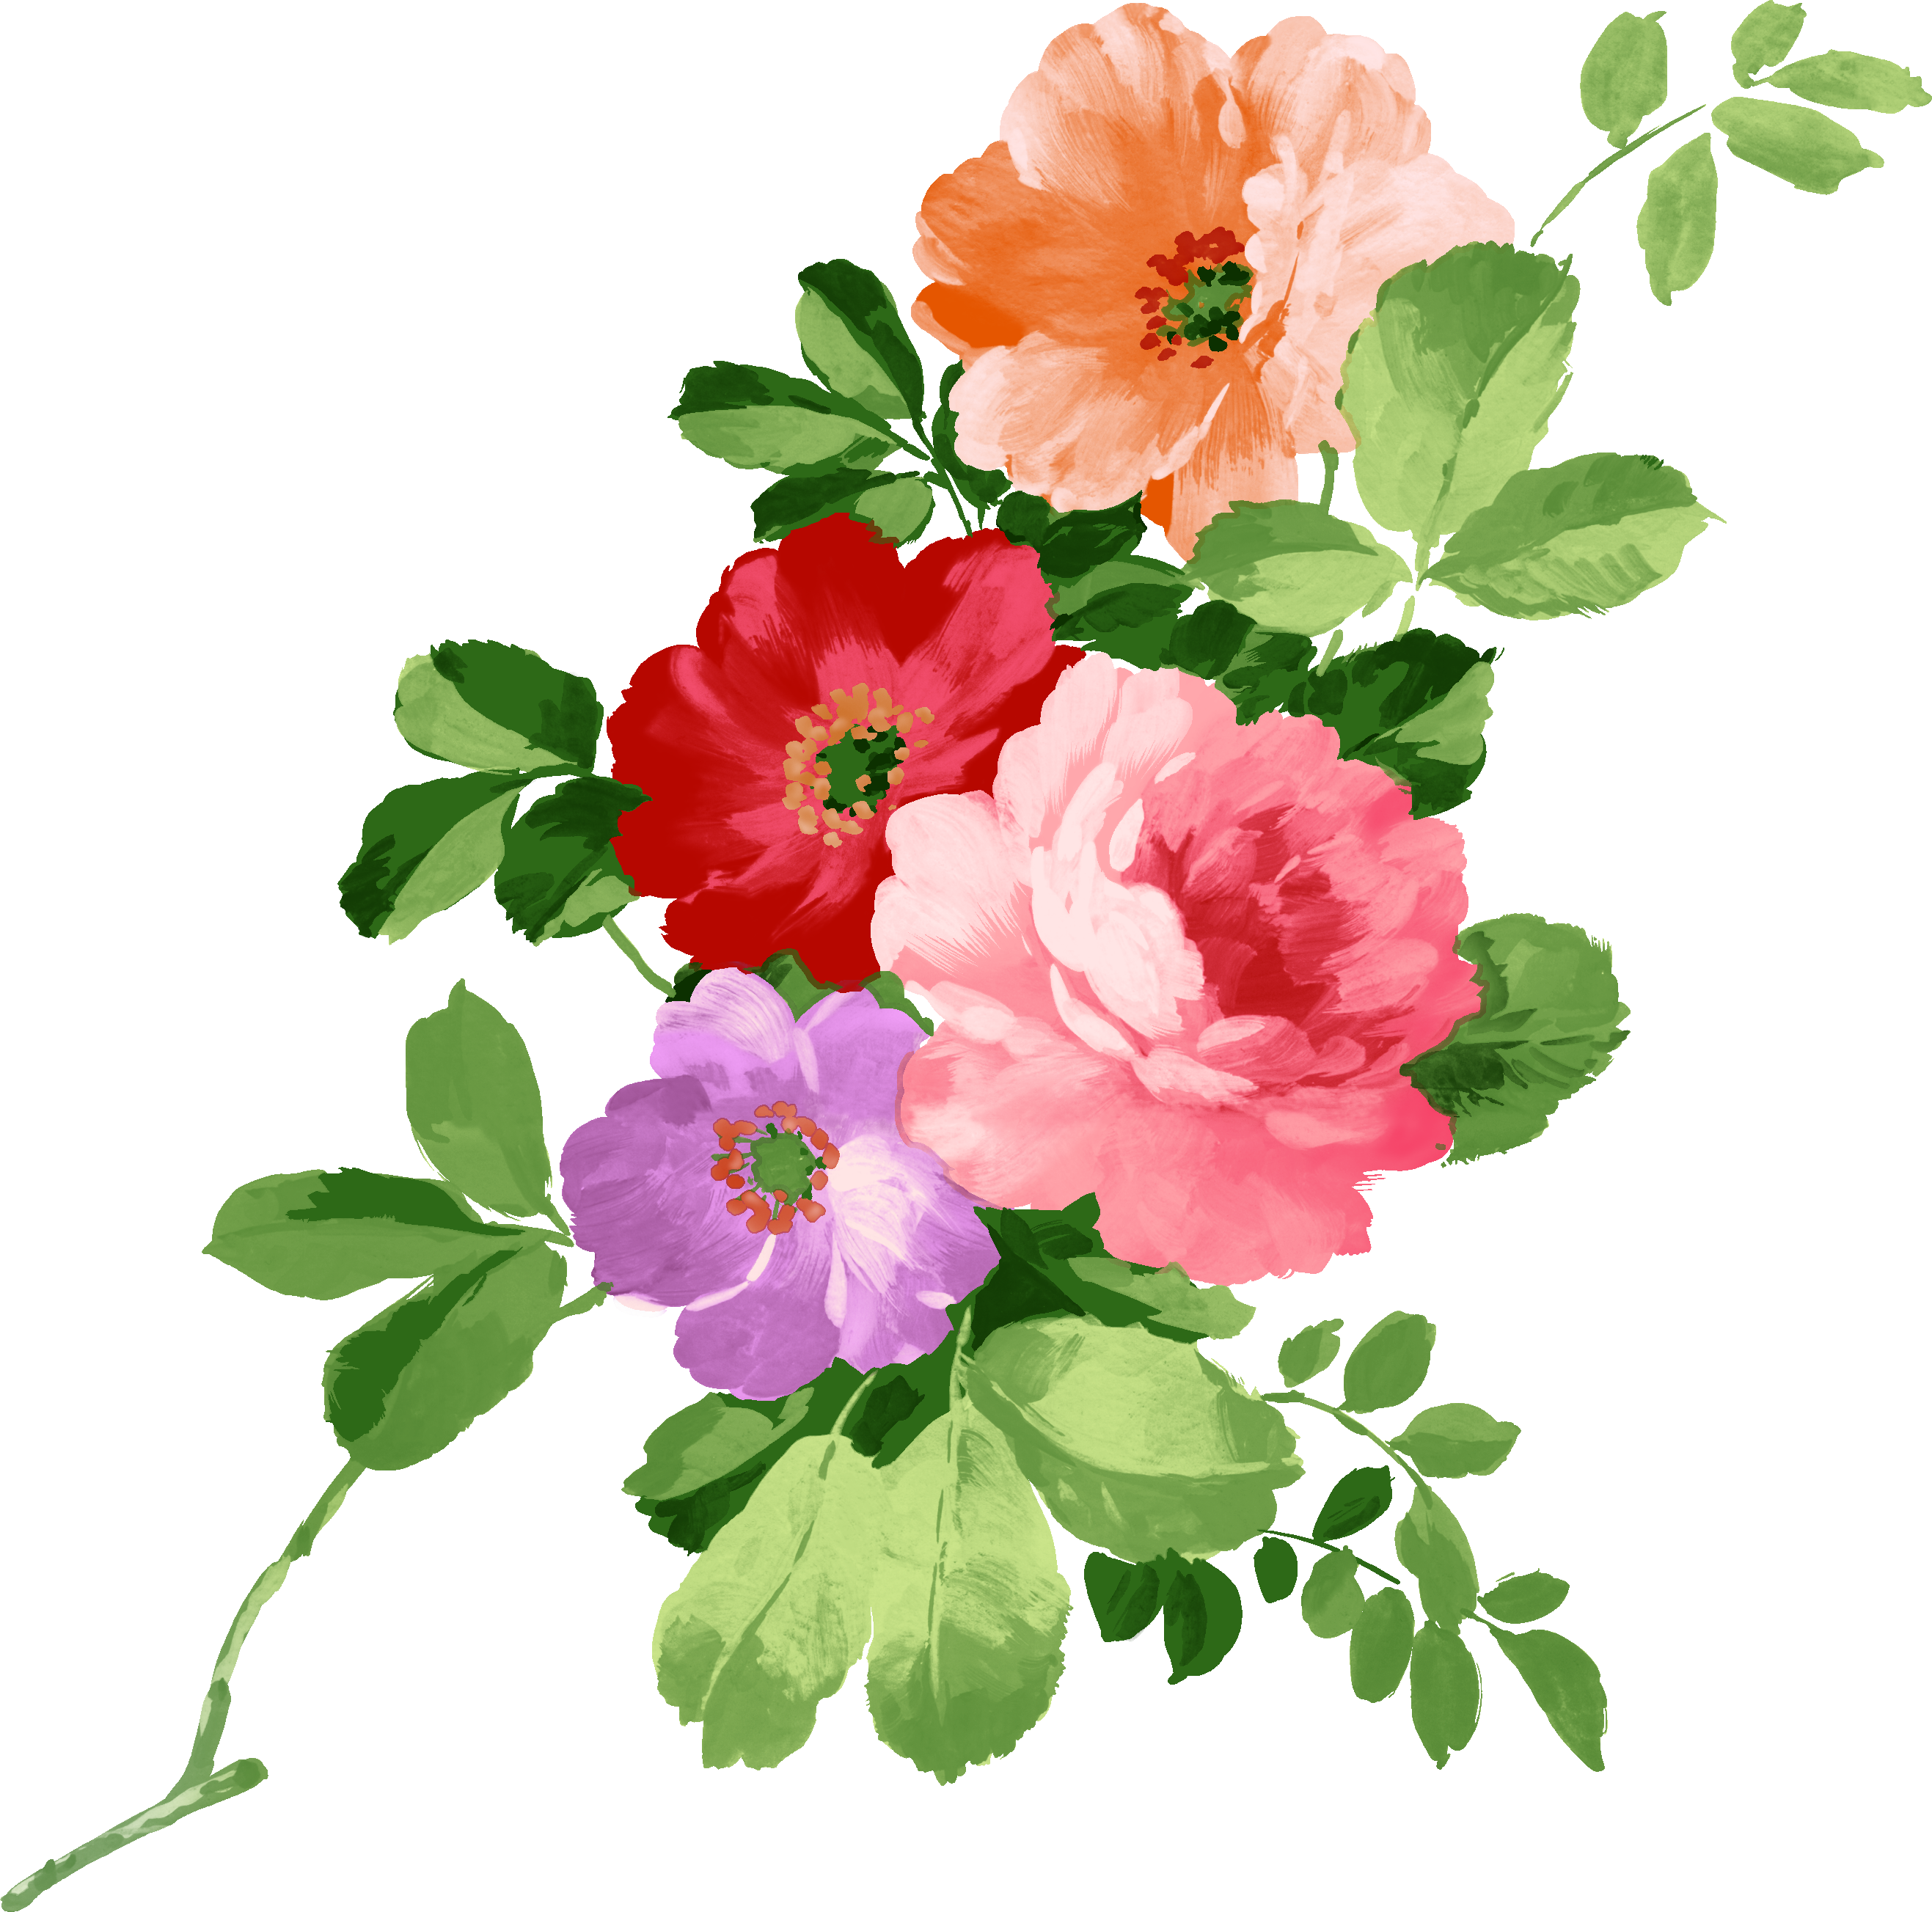 Pear clipart rose. Flowers multicolored png pinterest